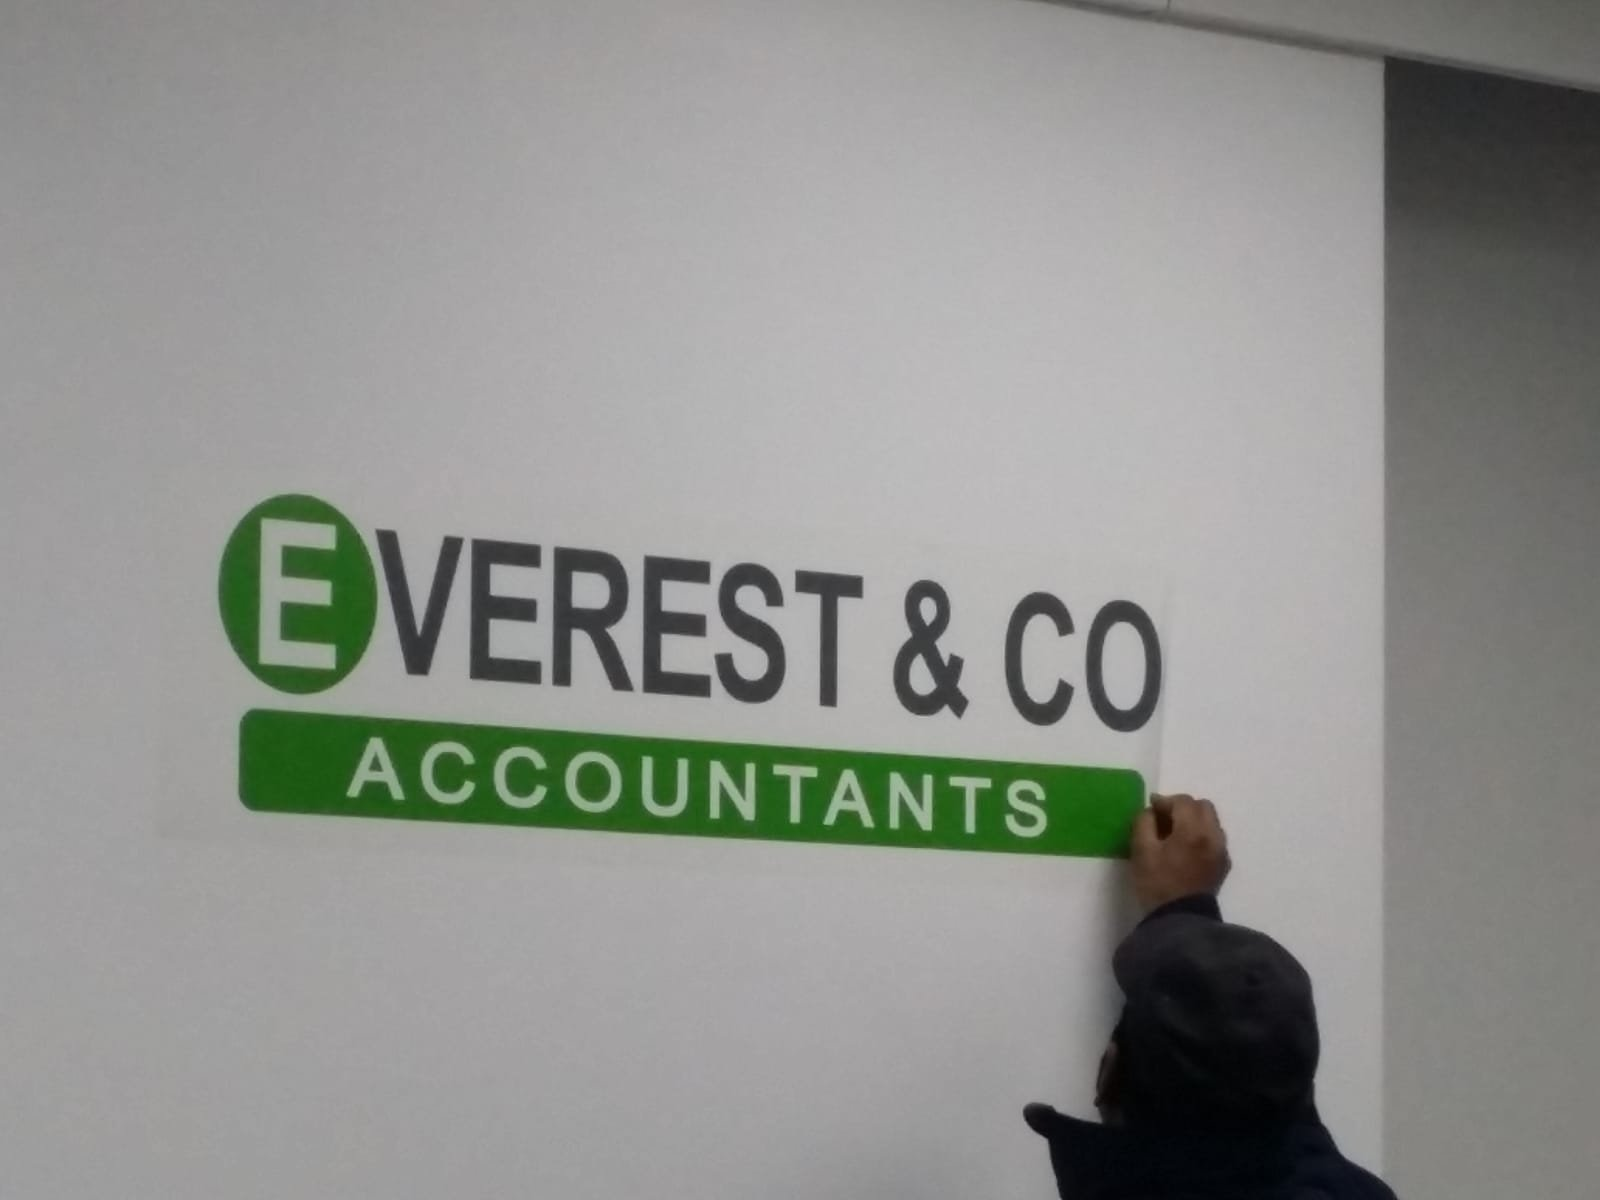 everest & co